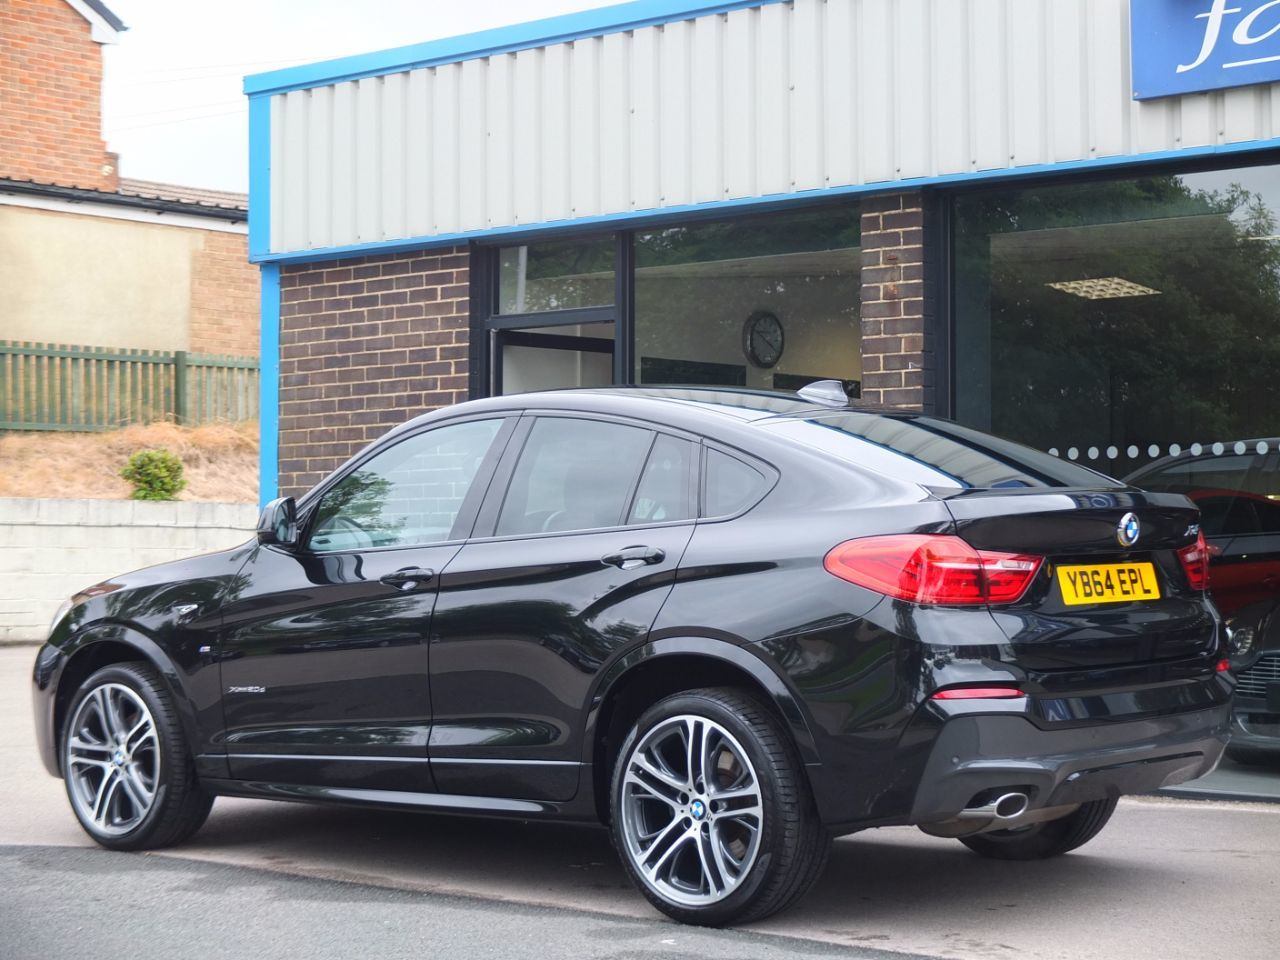 used bmw x4 xdrive20d m sport plus auto for sale in bradford west yorkshire fa roper ltd. Black Bedroom Furniture Sets. Home Design Ideas